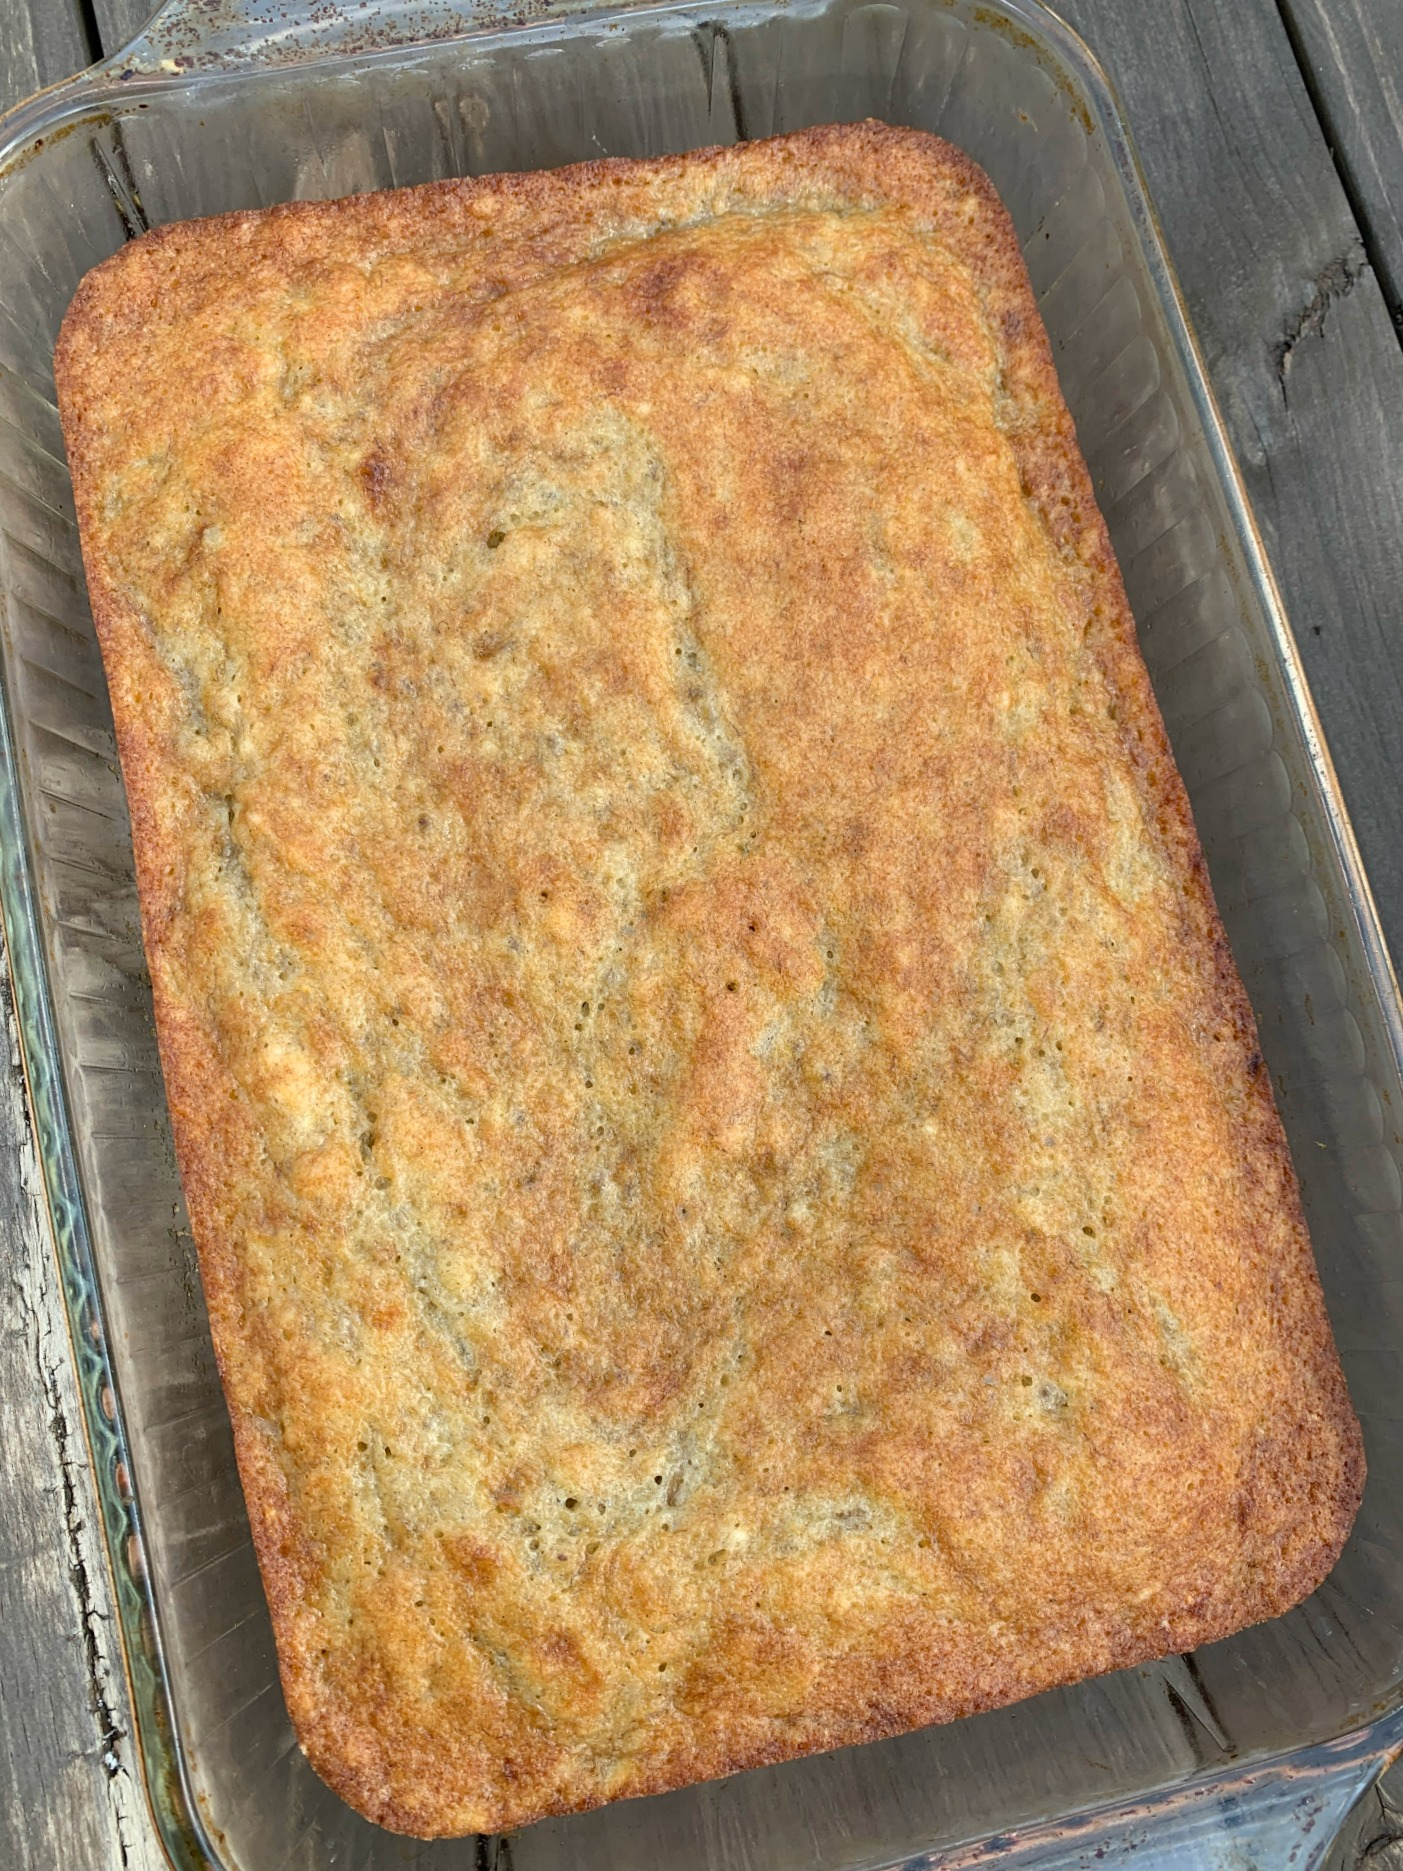 a glass 13x9 pan with a baked banana cake in it